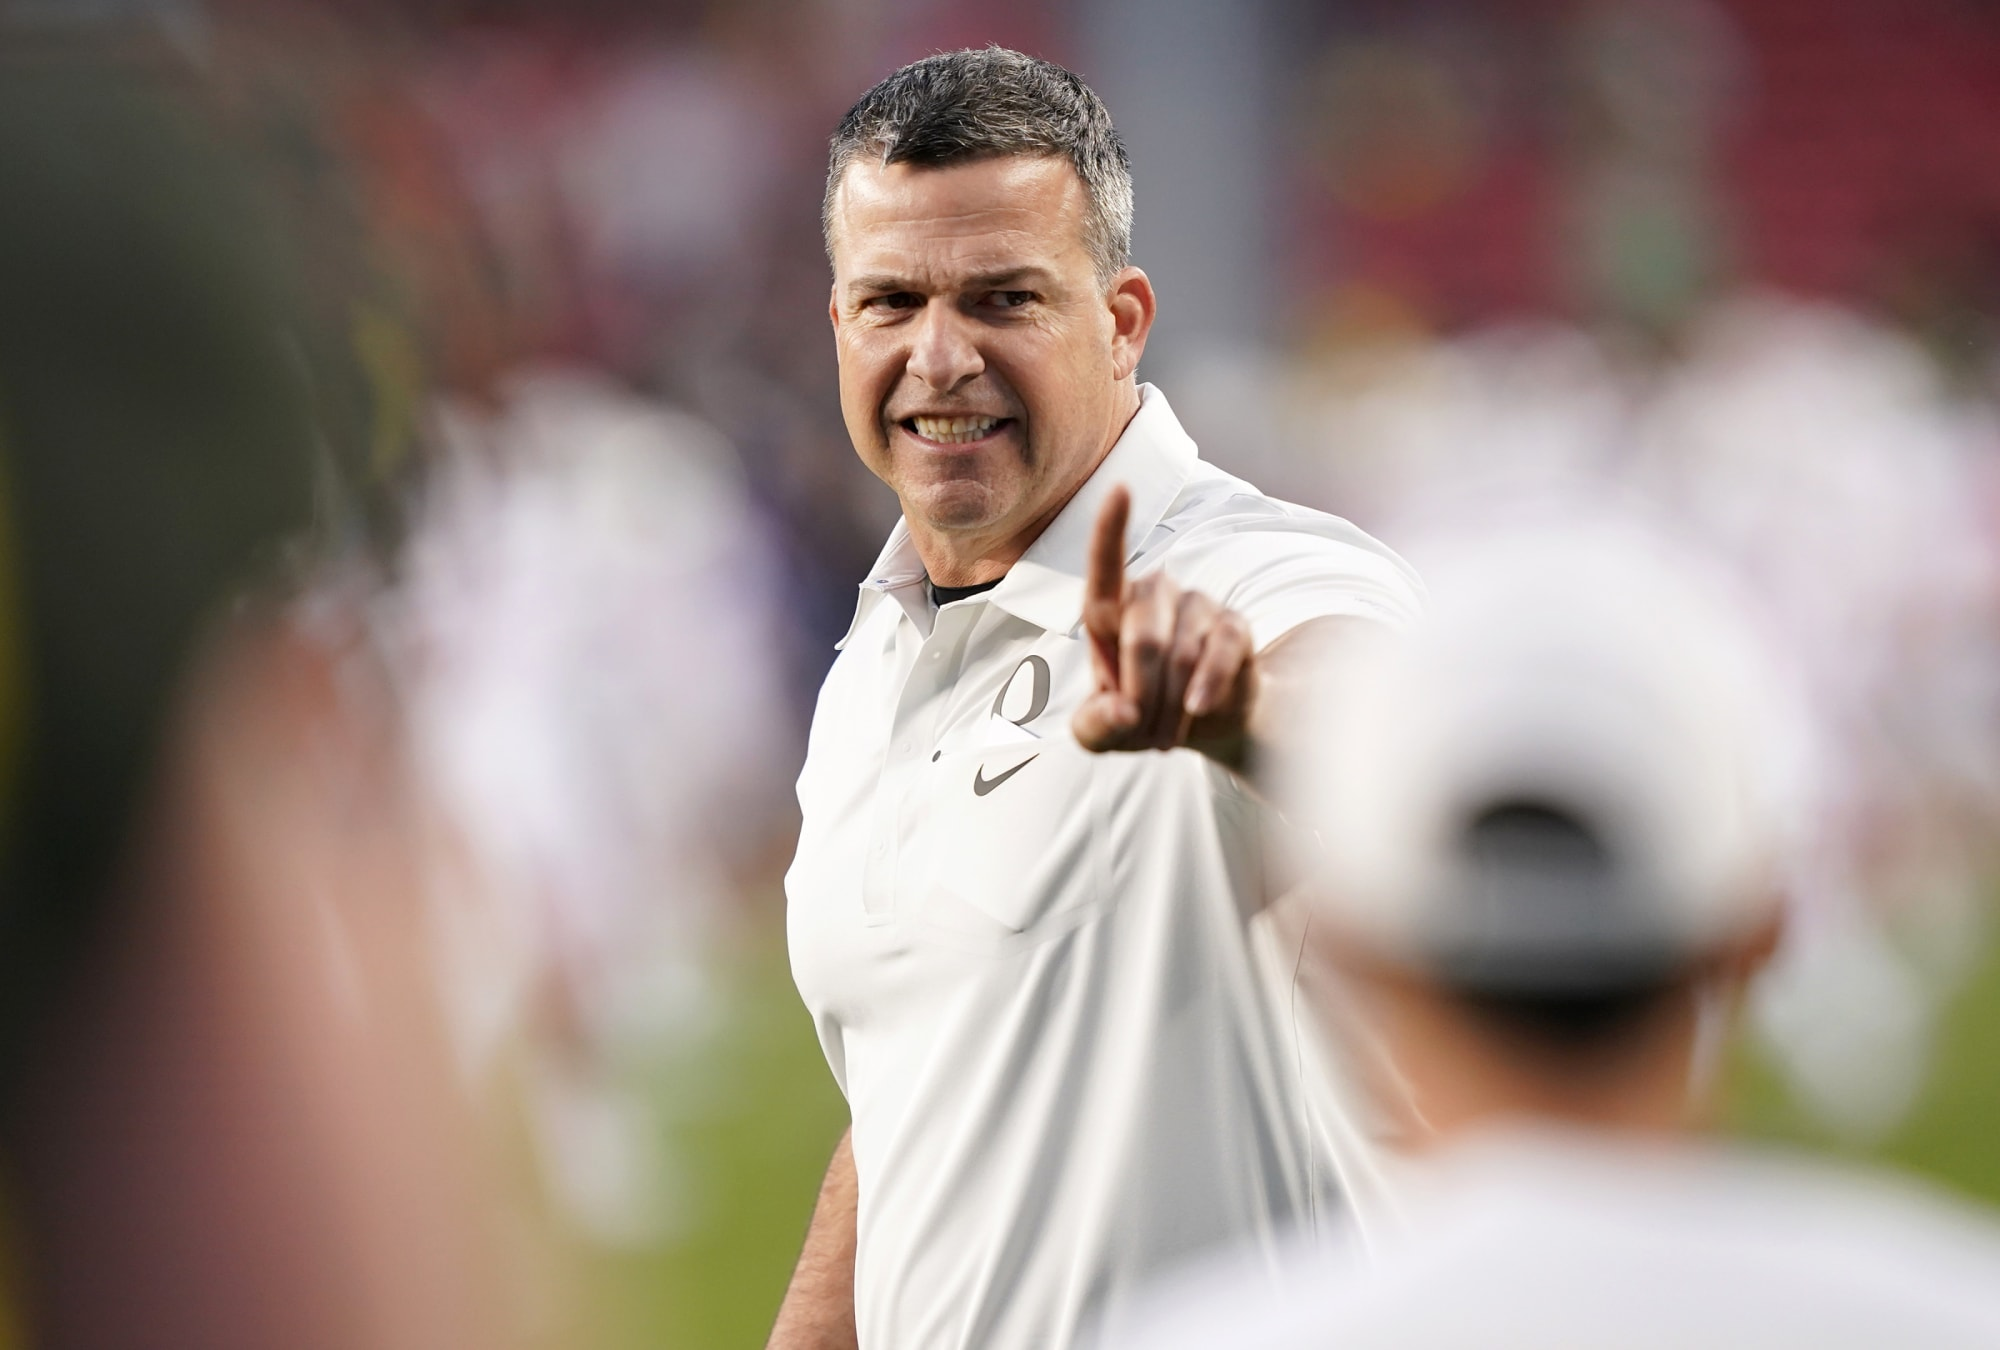 """Mario Cristobal says chances of Justin Flowe breakout are """"extremely high"""""""